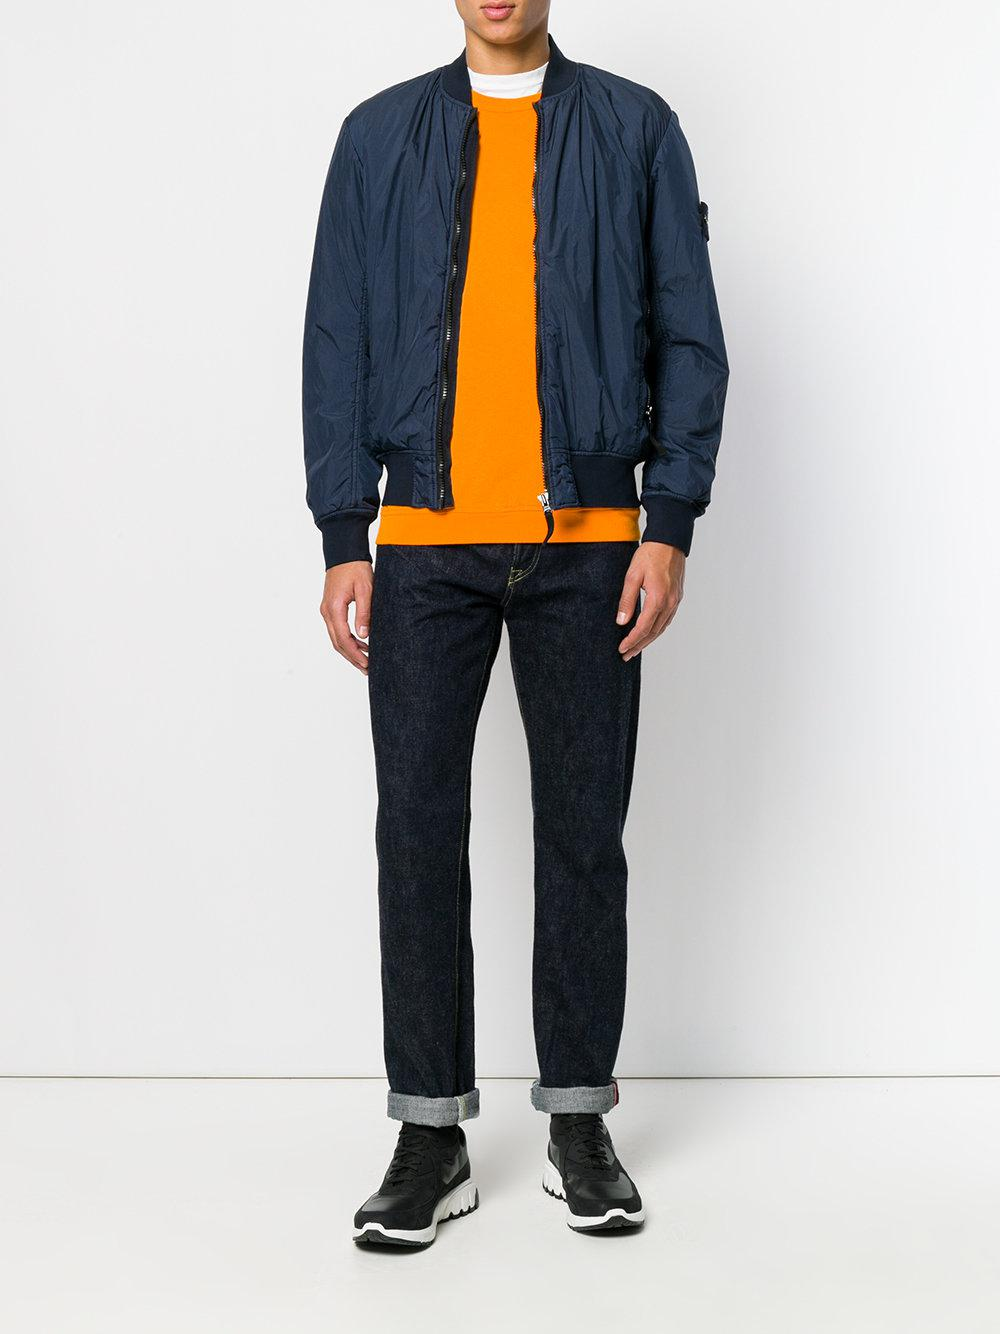 Stone Island Synthetic Garment Dyed Crinkle Reps Ny Bomber Jacket in Blue for Men